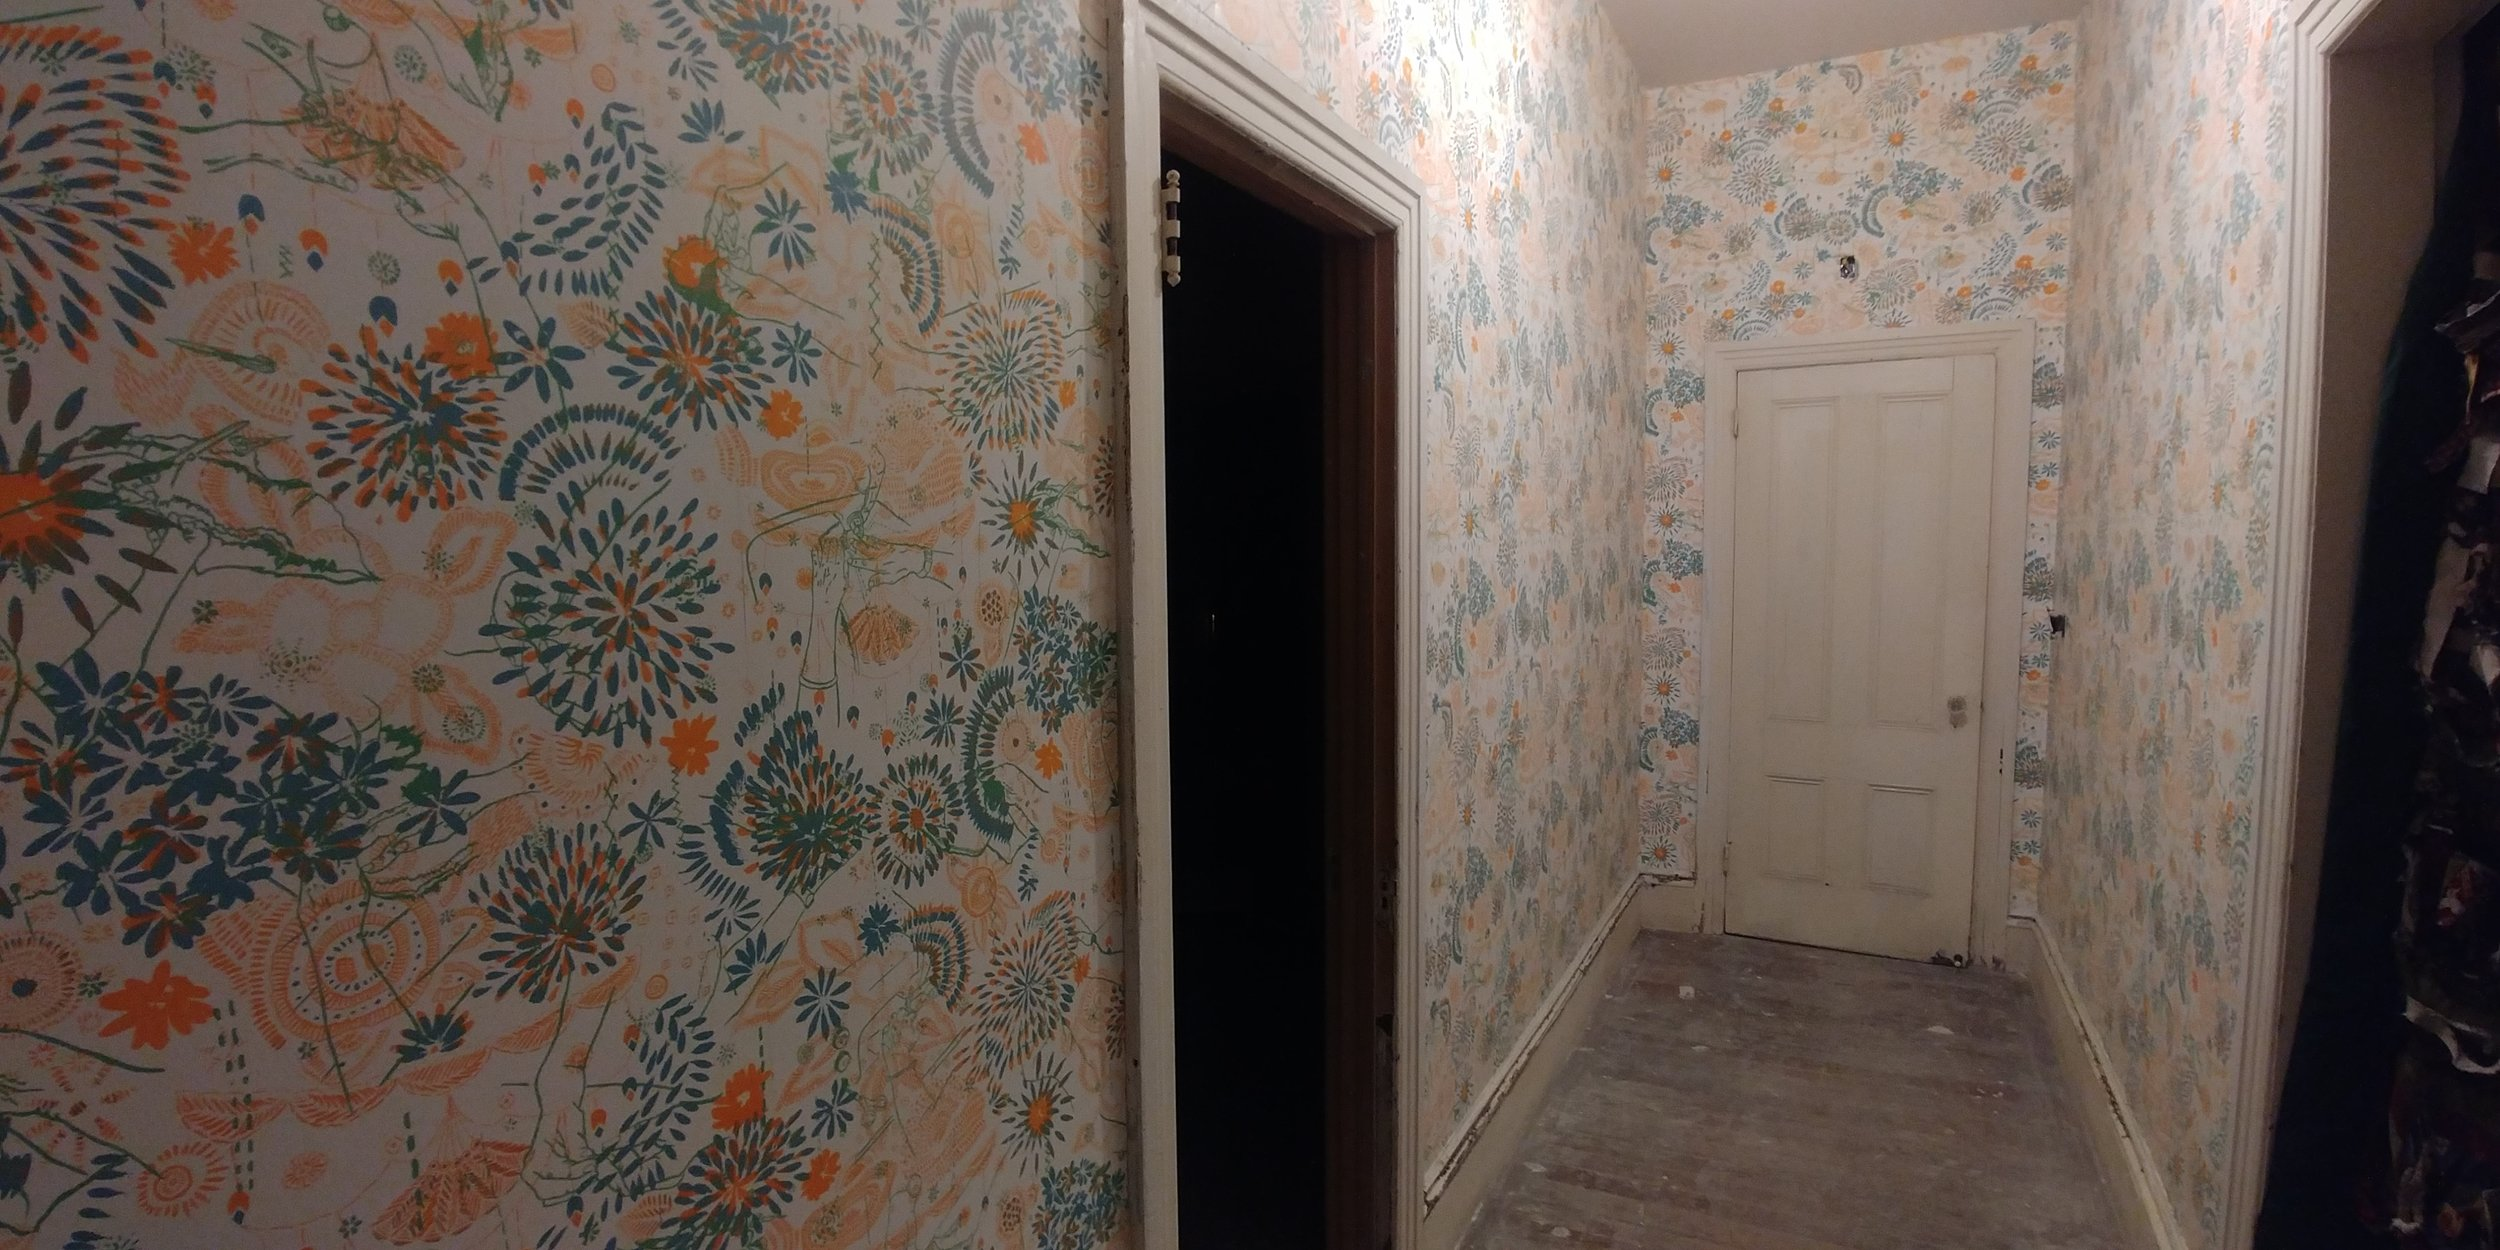 Installed in a hallway at the historic Tirocchi Sister's dress makers house  Wedding Cake House  being restored by  Dirt Palace Projects.  514 Broadway Providence, RI